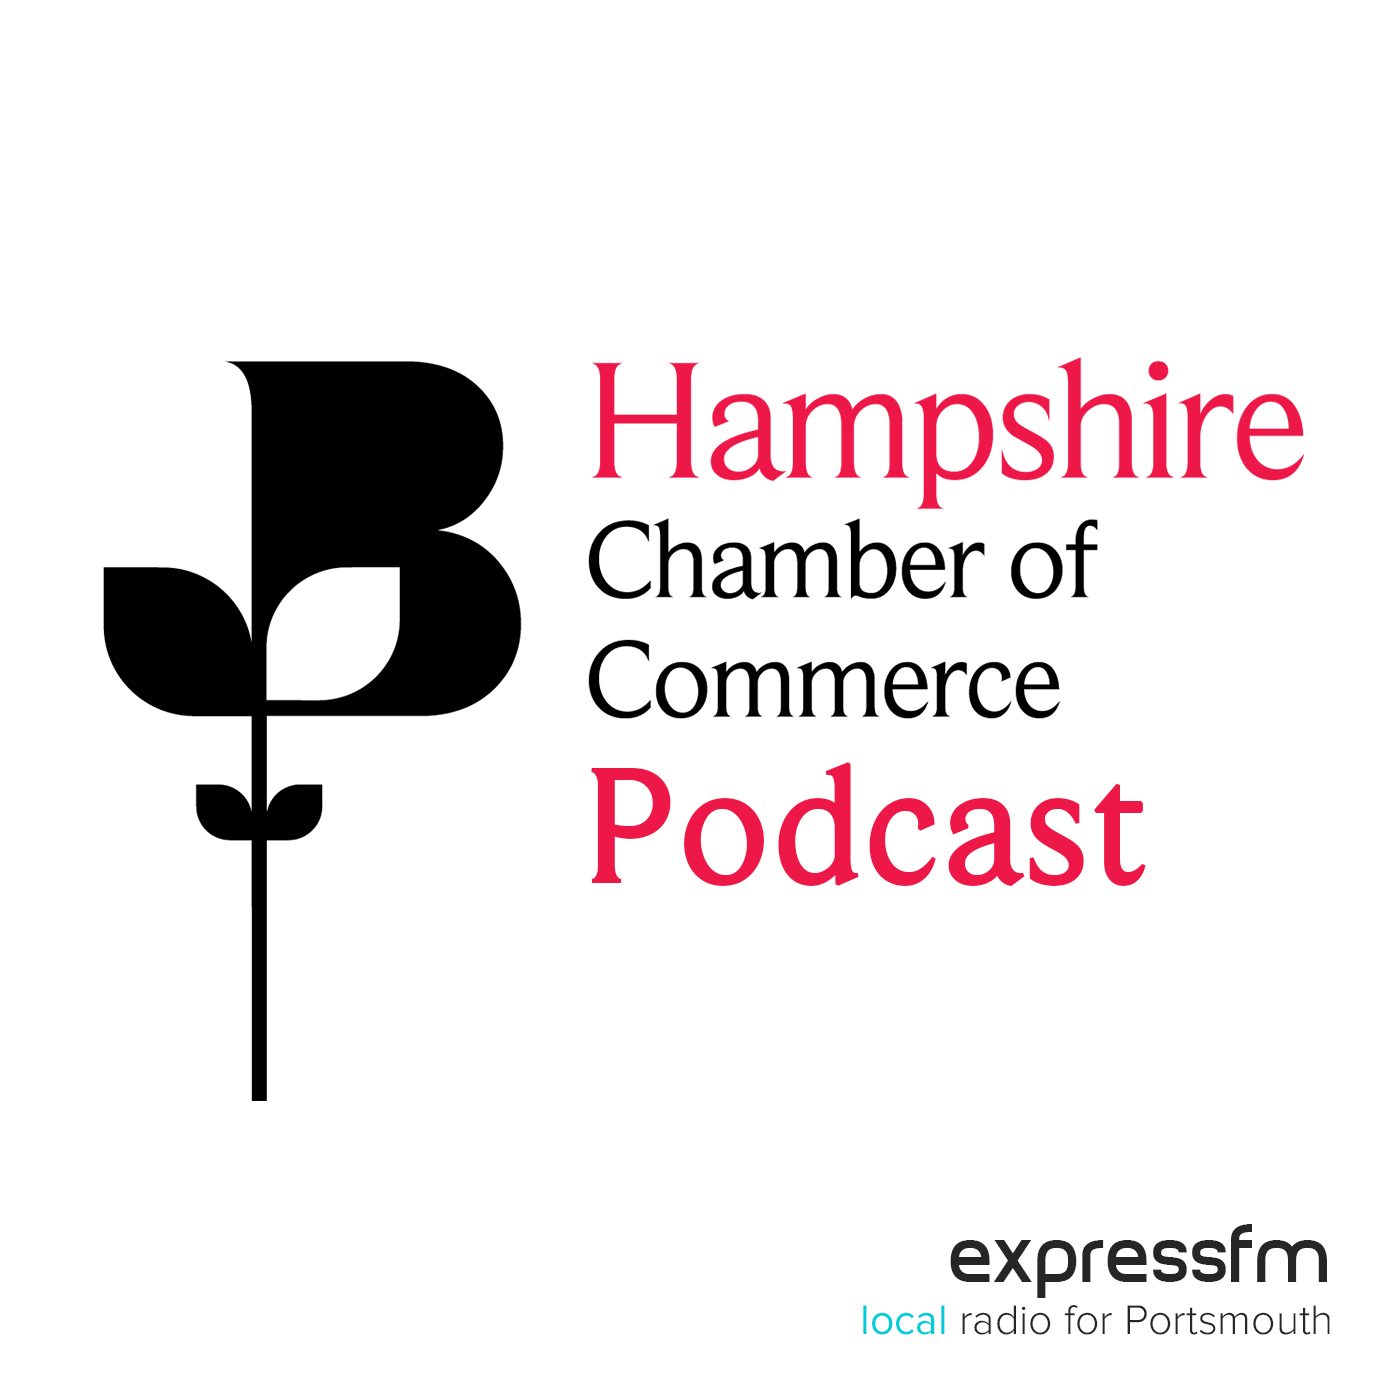 Hampshire Chamber of Commerce Podcast